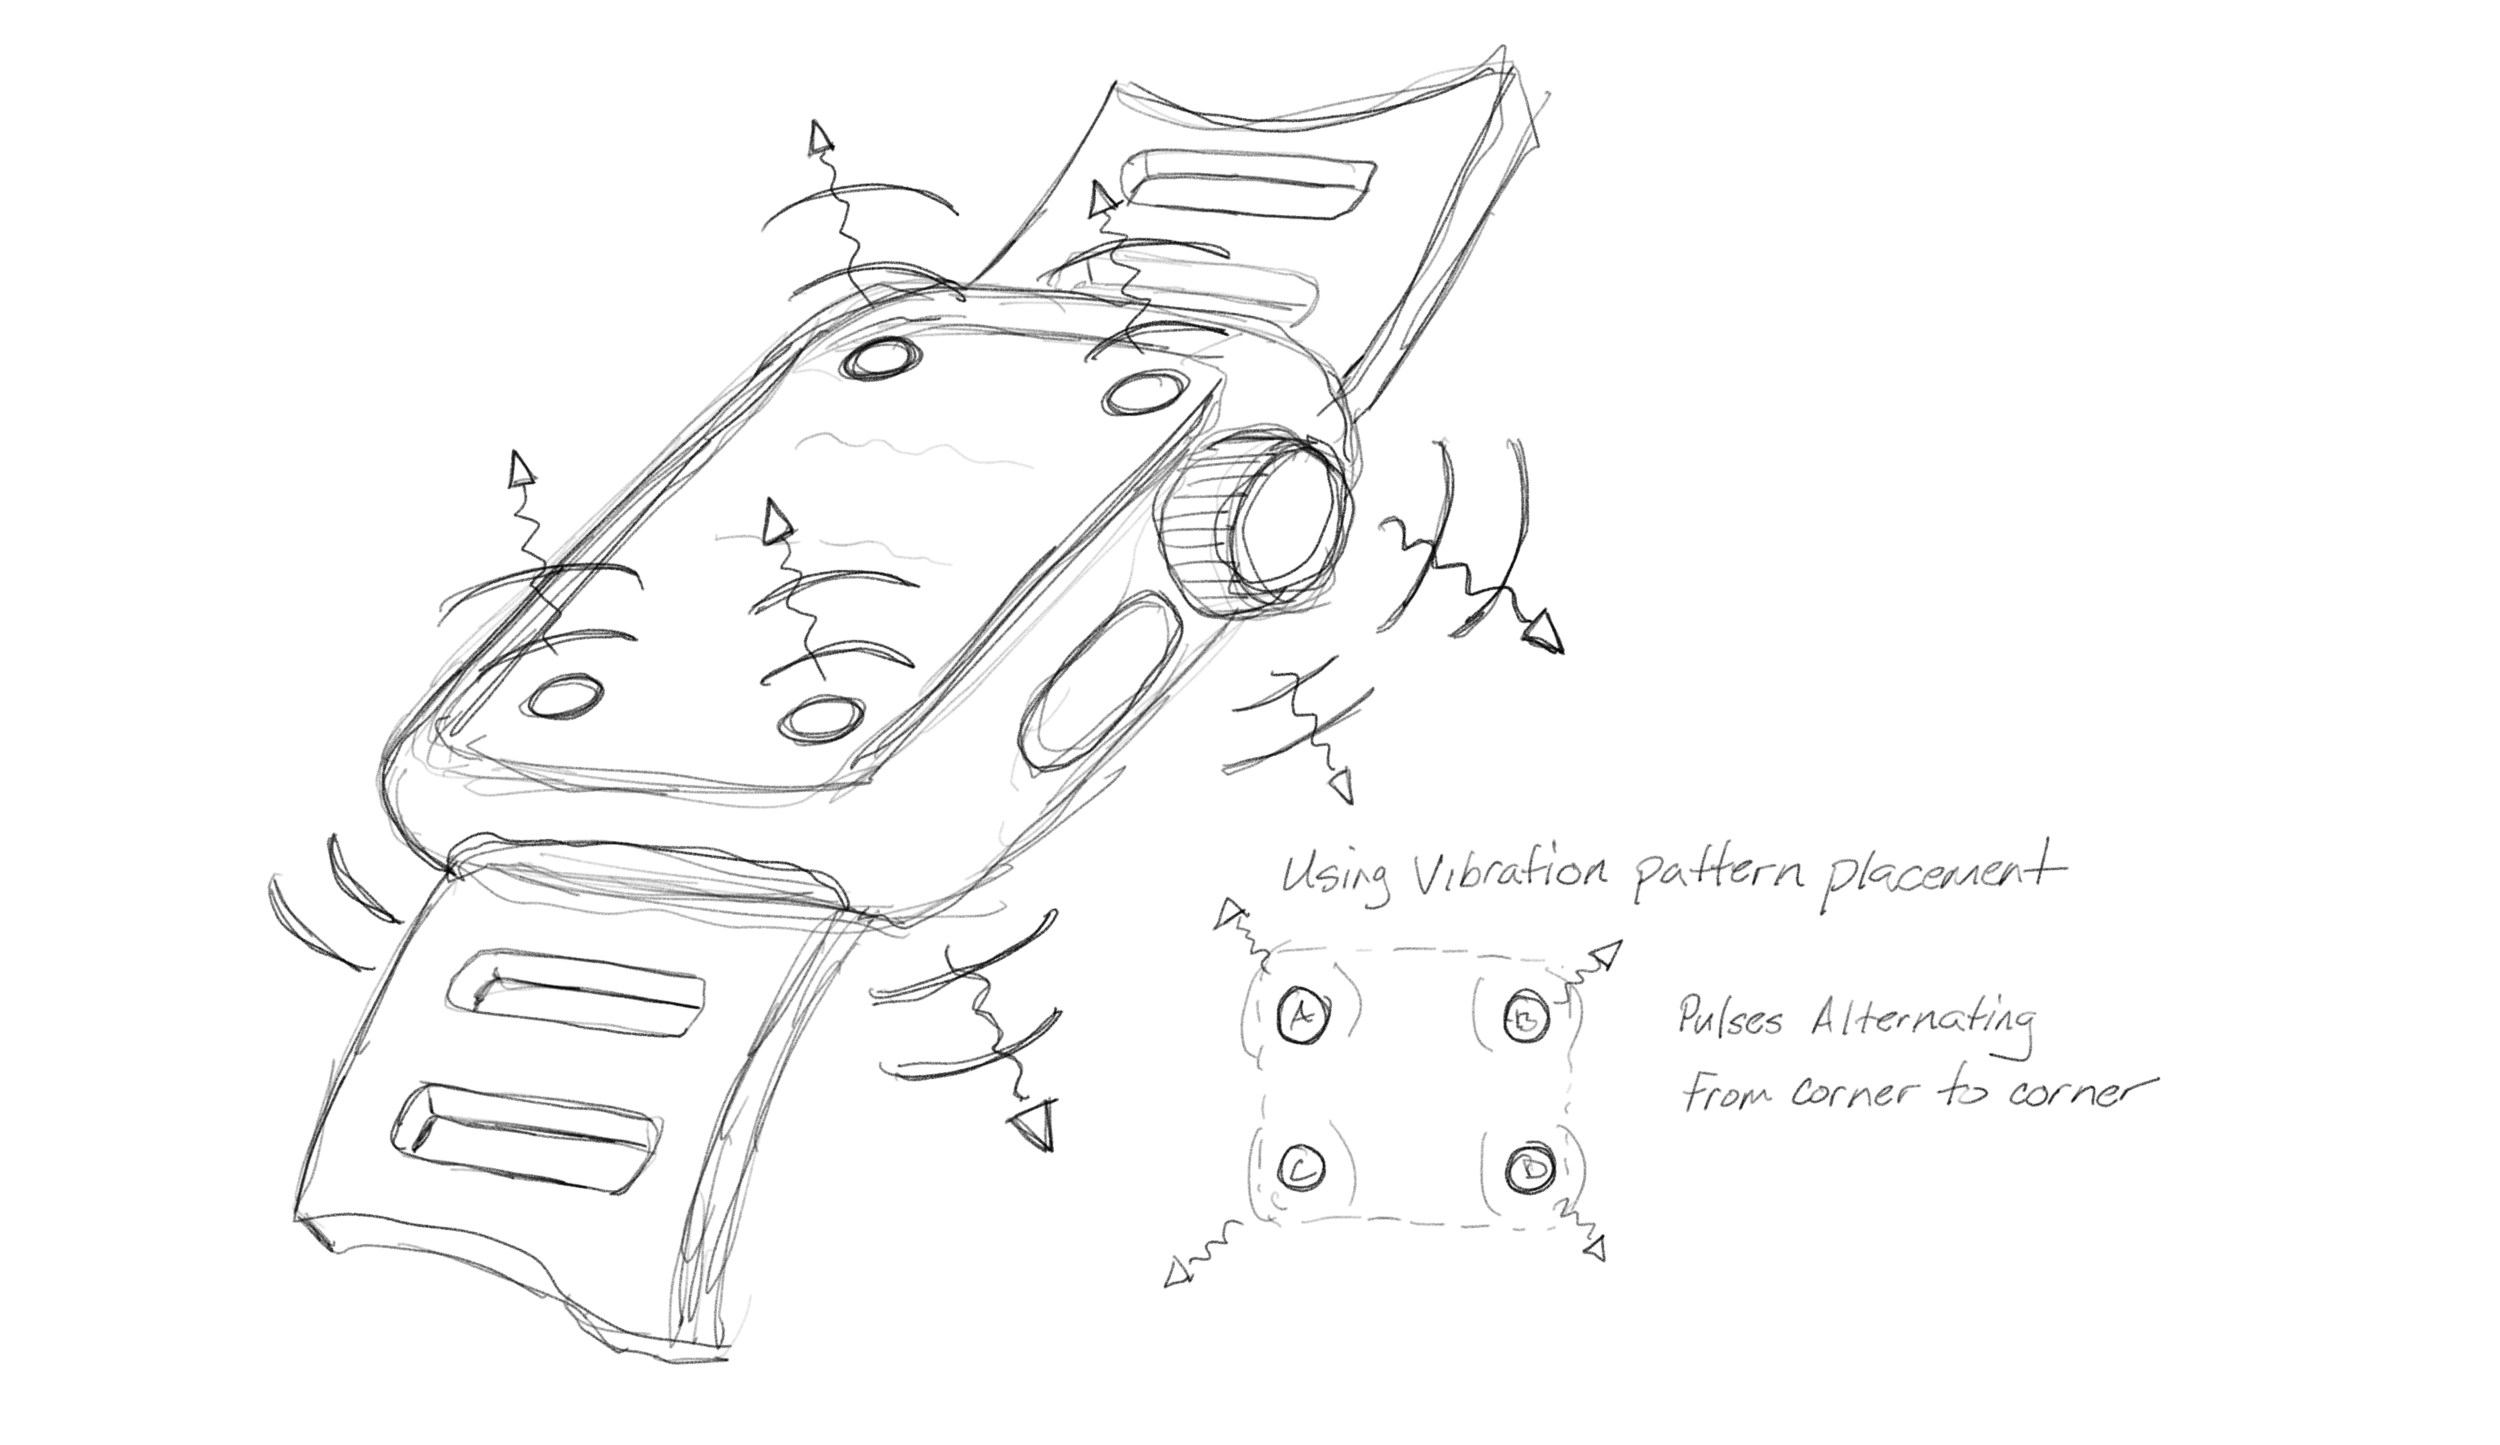 Concept sketches demonstrating ideas around the use of vibration patterns.